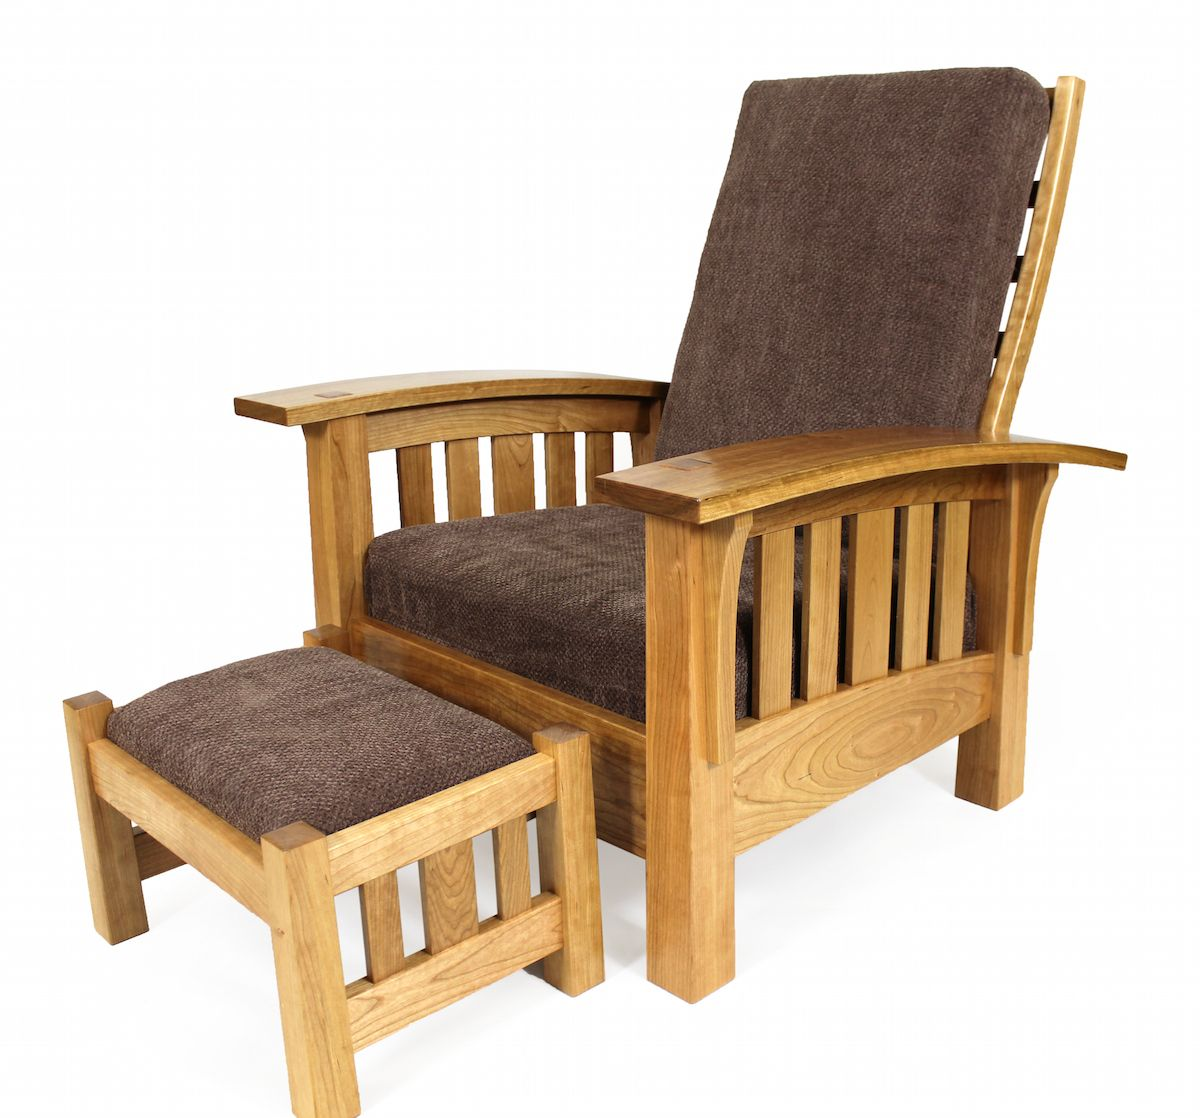 The Bow Arm Morris Chair Is A Classic Woodworking Project